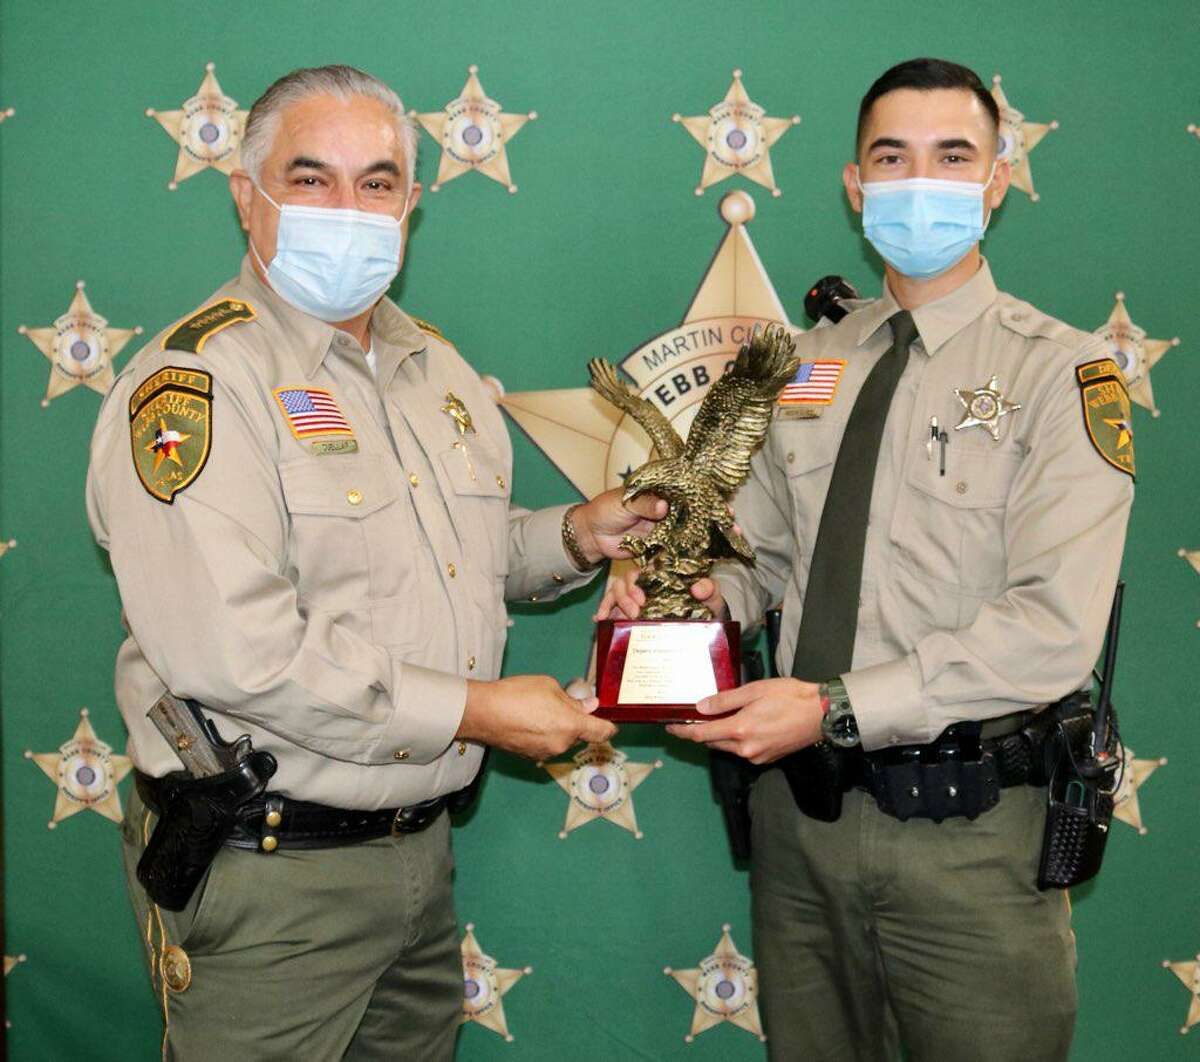 Webb County Sheriff Martin Cuellar recognized Deputy Alejandro Rodriguez as the 2021 Rookie of the Year.